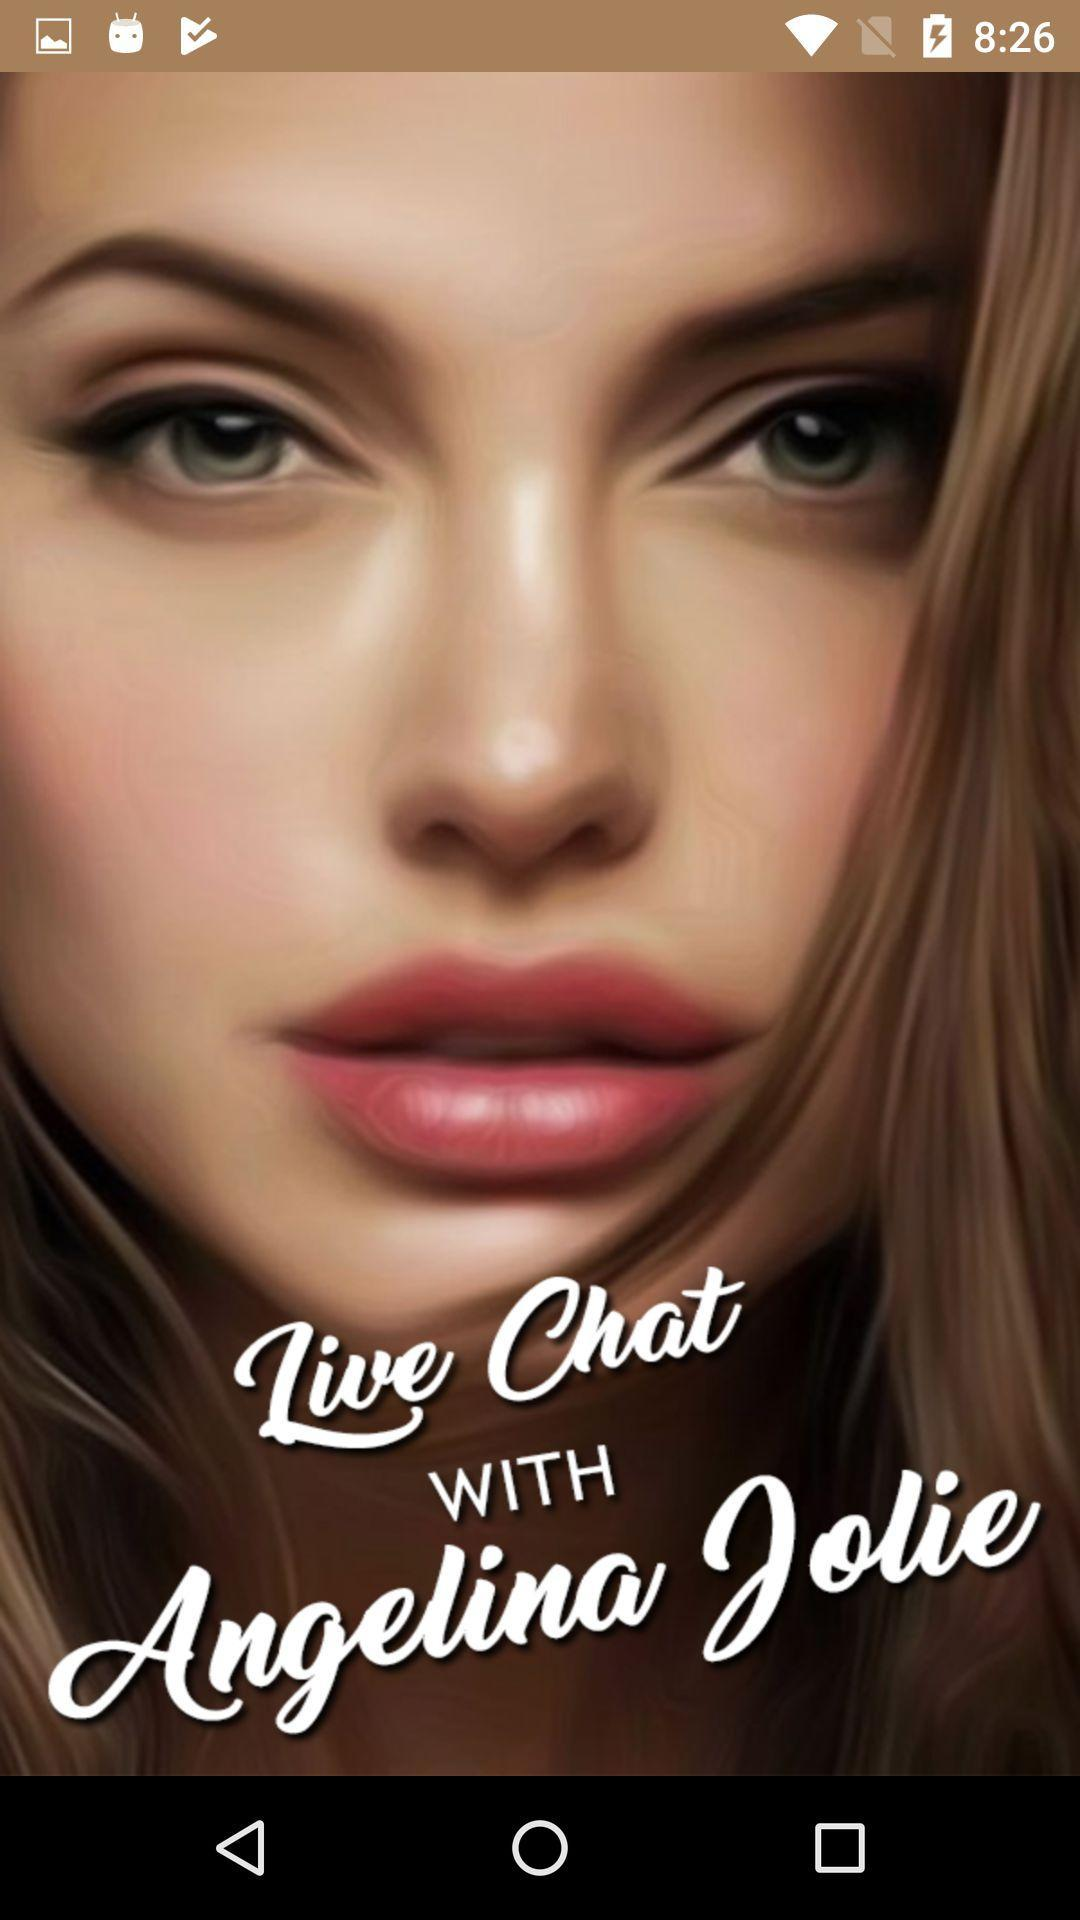 Angelina Jolie Cyborg 2 1993 live chat with angelina jolie - prank for android - apk download